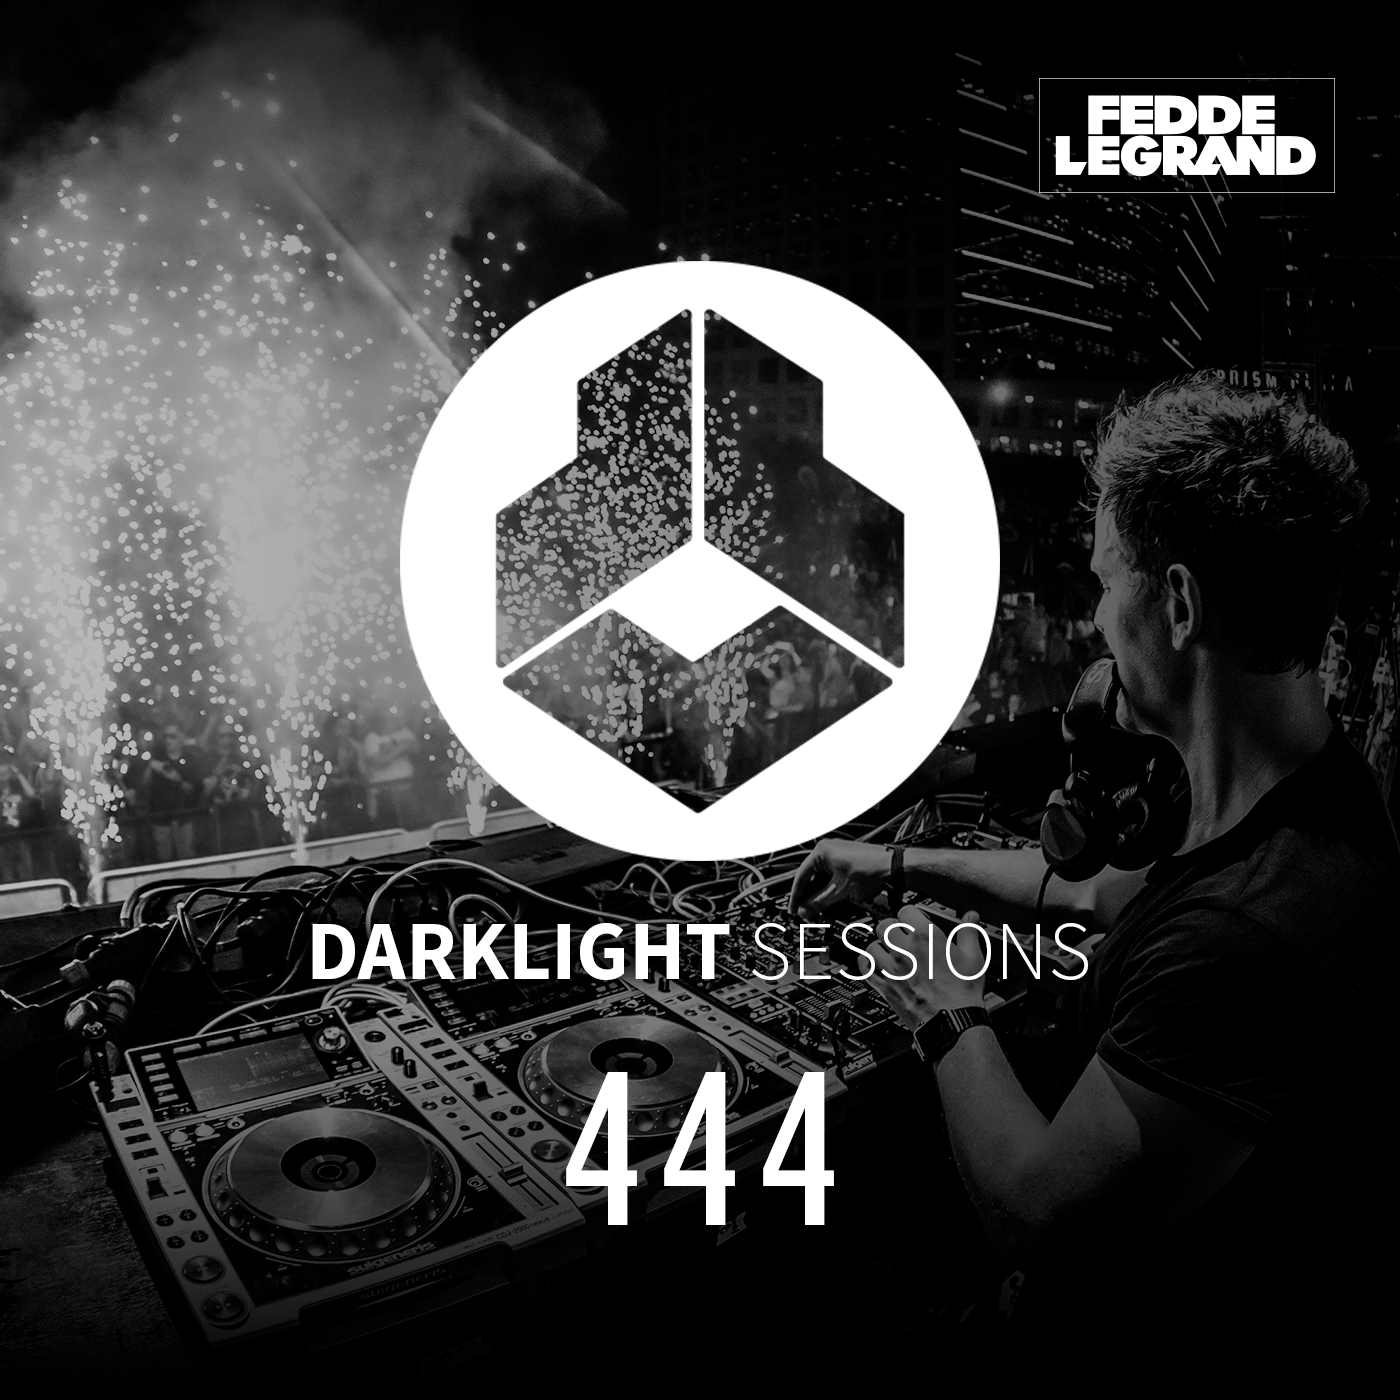 Darklight Sessions 444